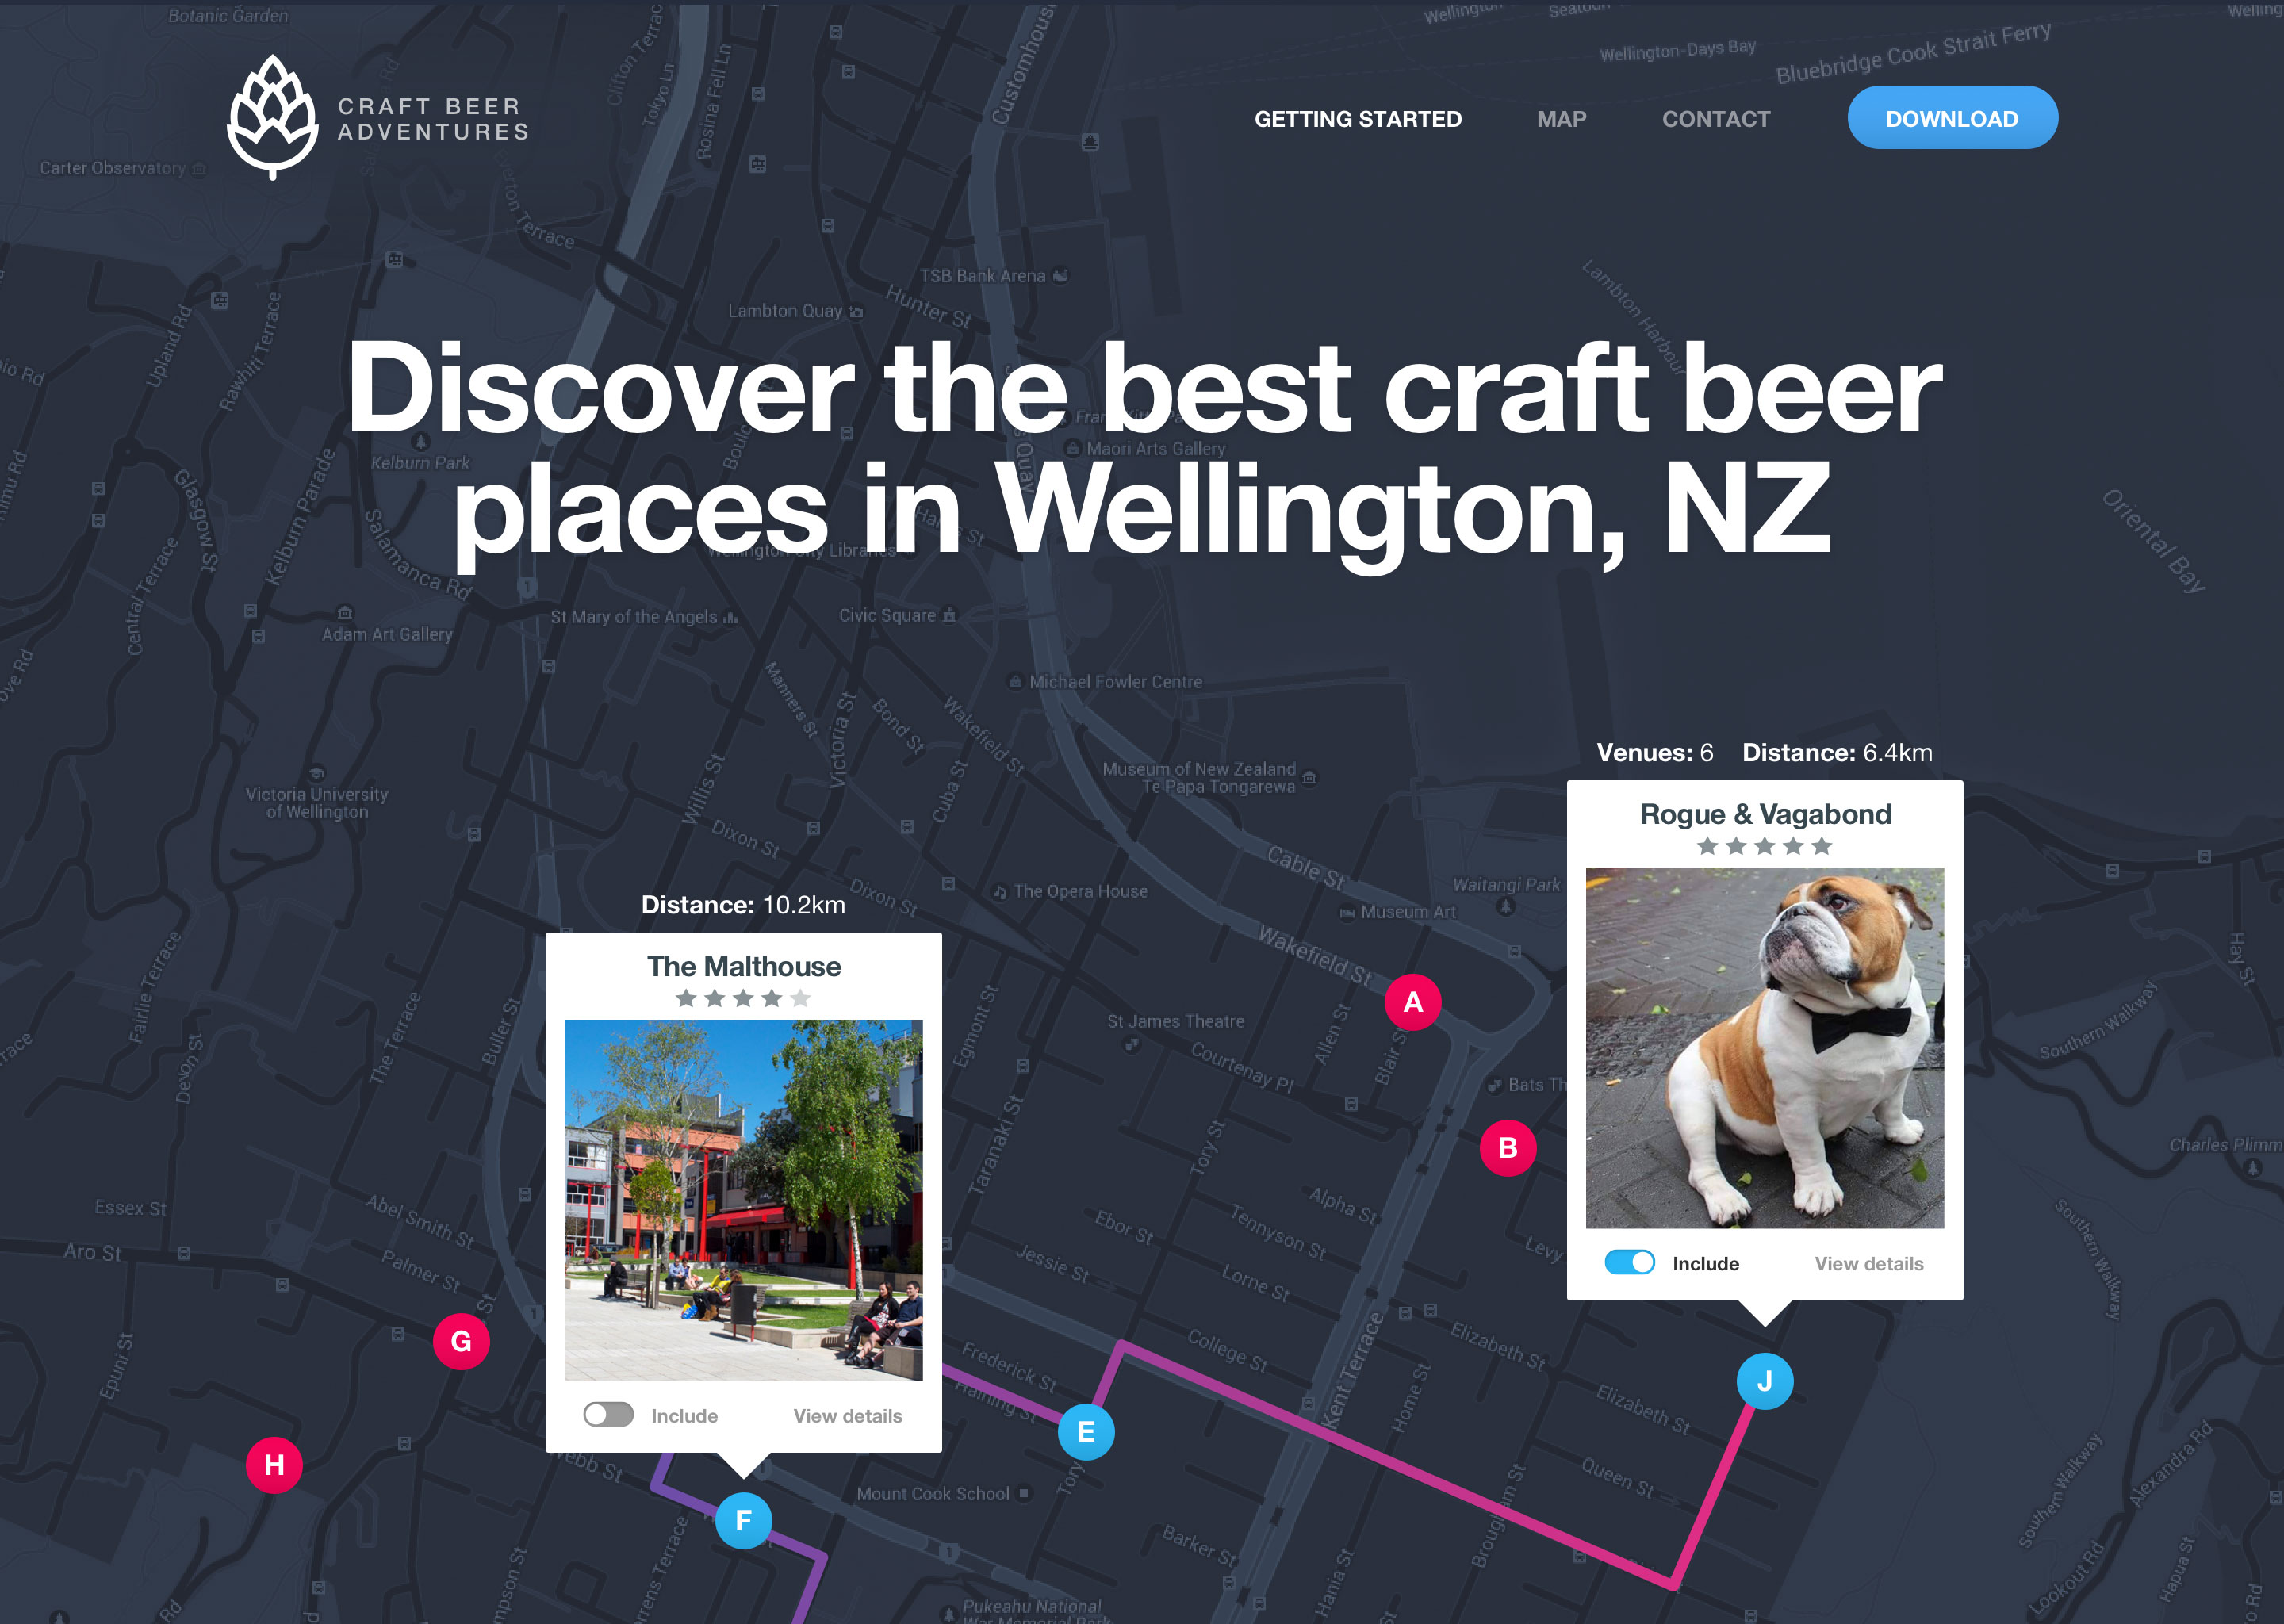 wellington-craft-beer-iphone-app-landing-page